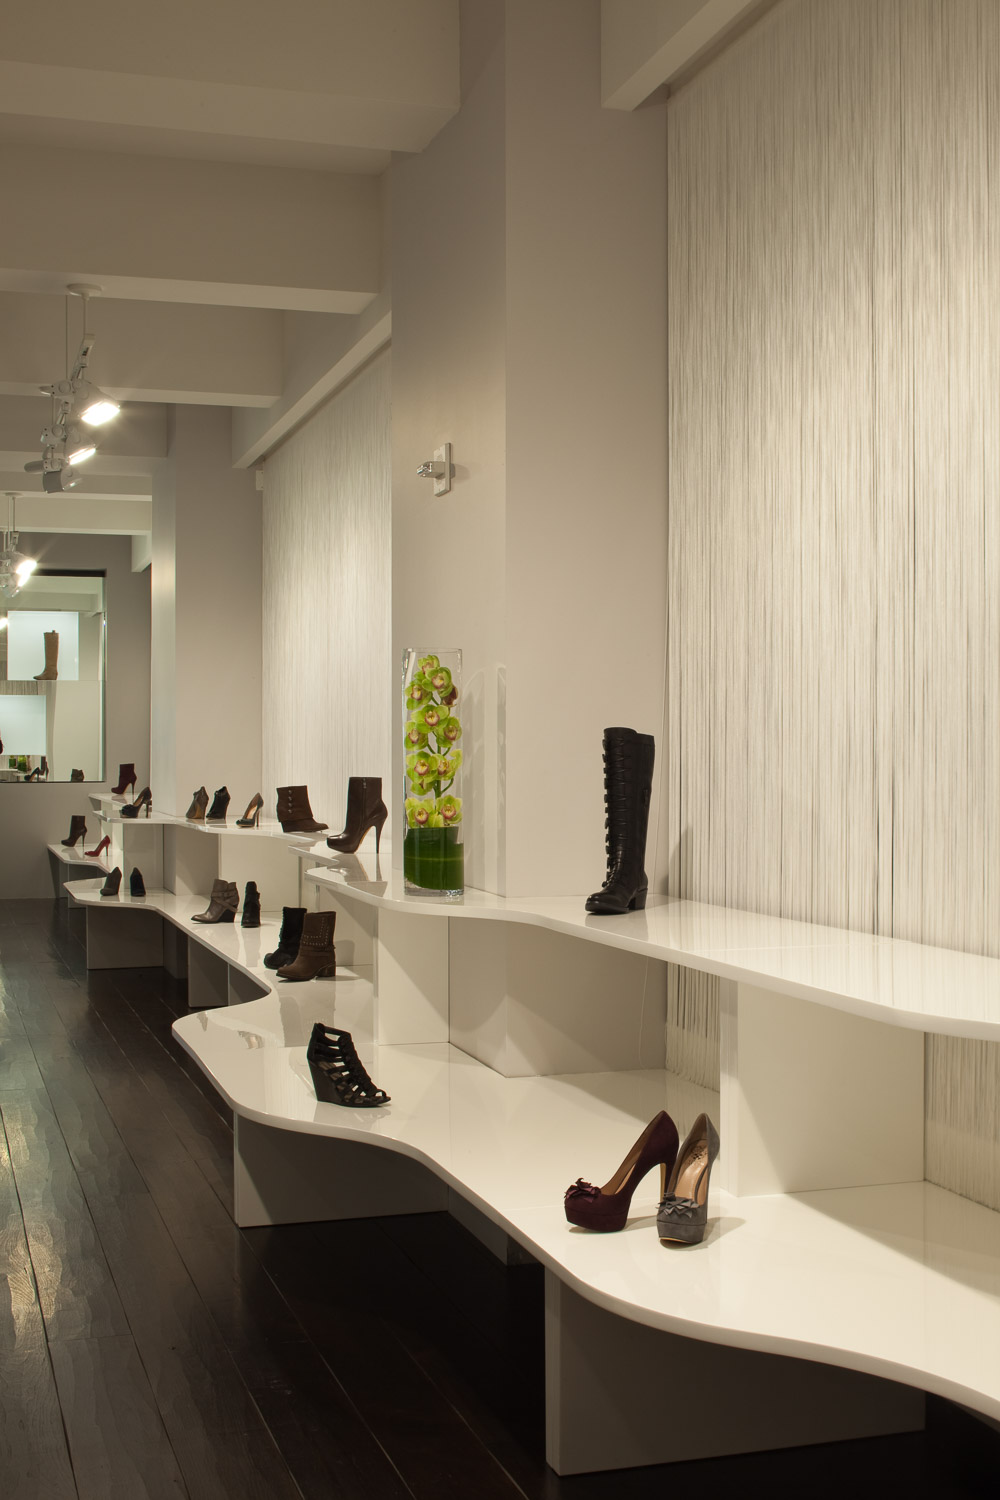 Vince Camuto Showroom Design 02.jpg